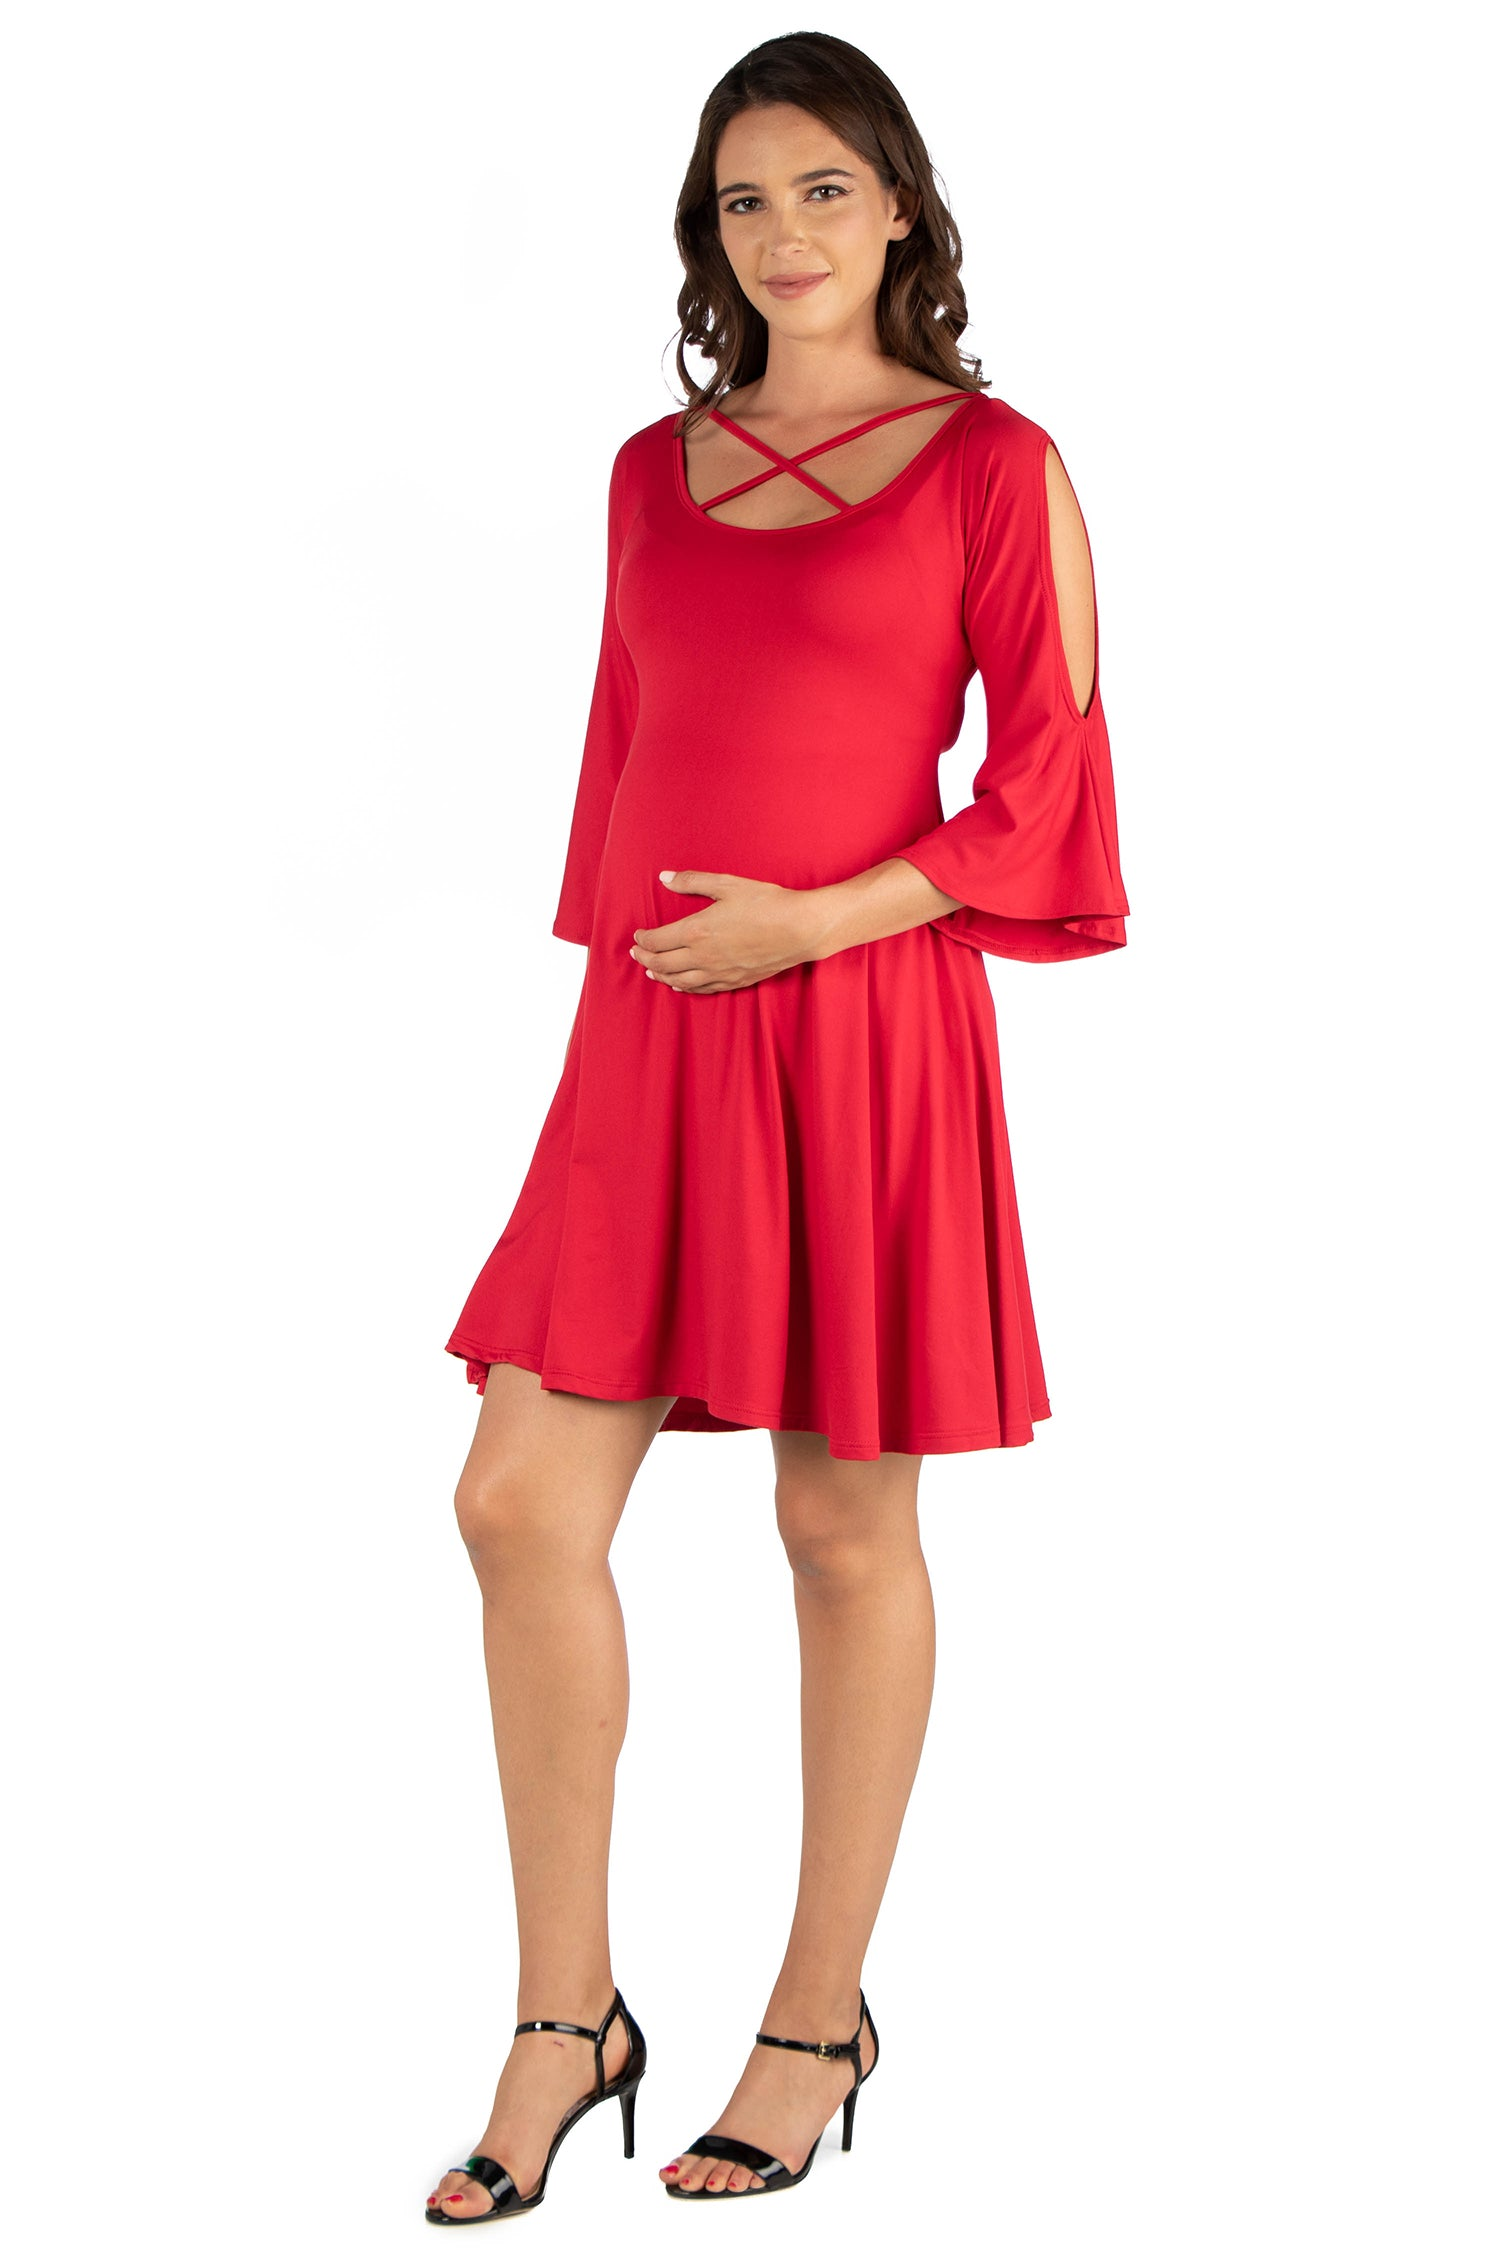 24seven Comfort Apparel Criss Cross Neckline Cold Shoulder Maternity Dress-DRESSES-24Seven Comfort Apparel-RED-1X-24/7 Comfort Apparel